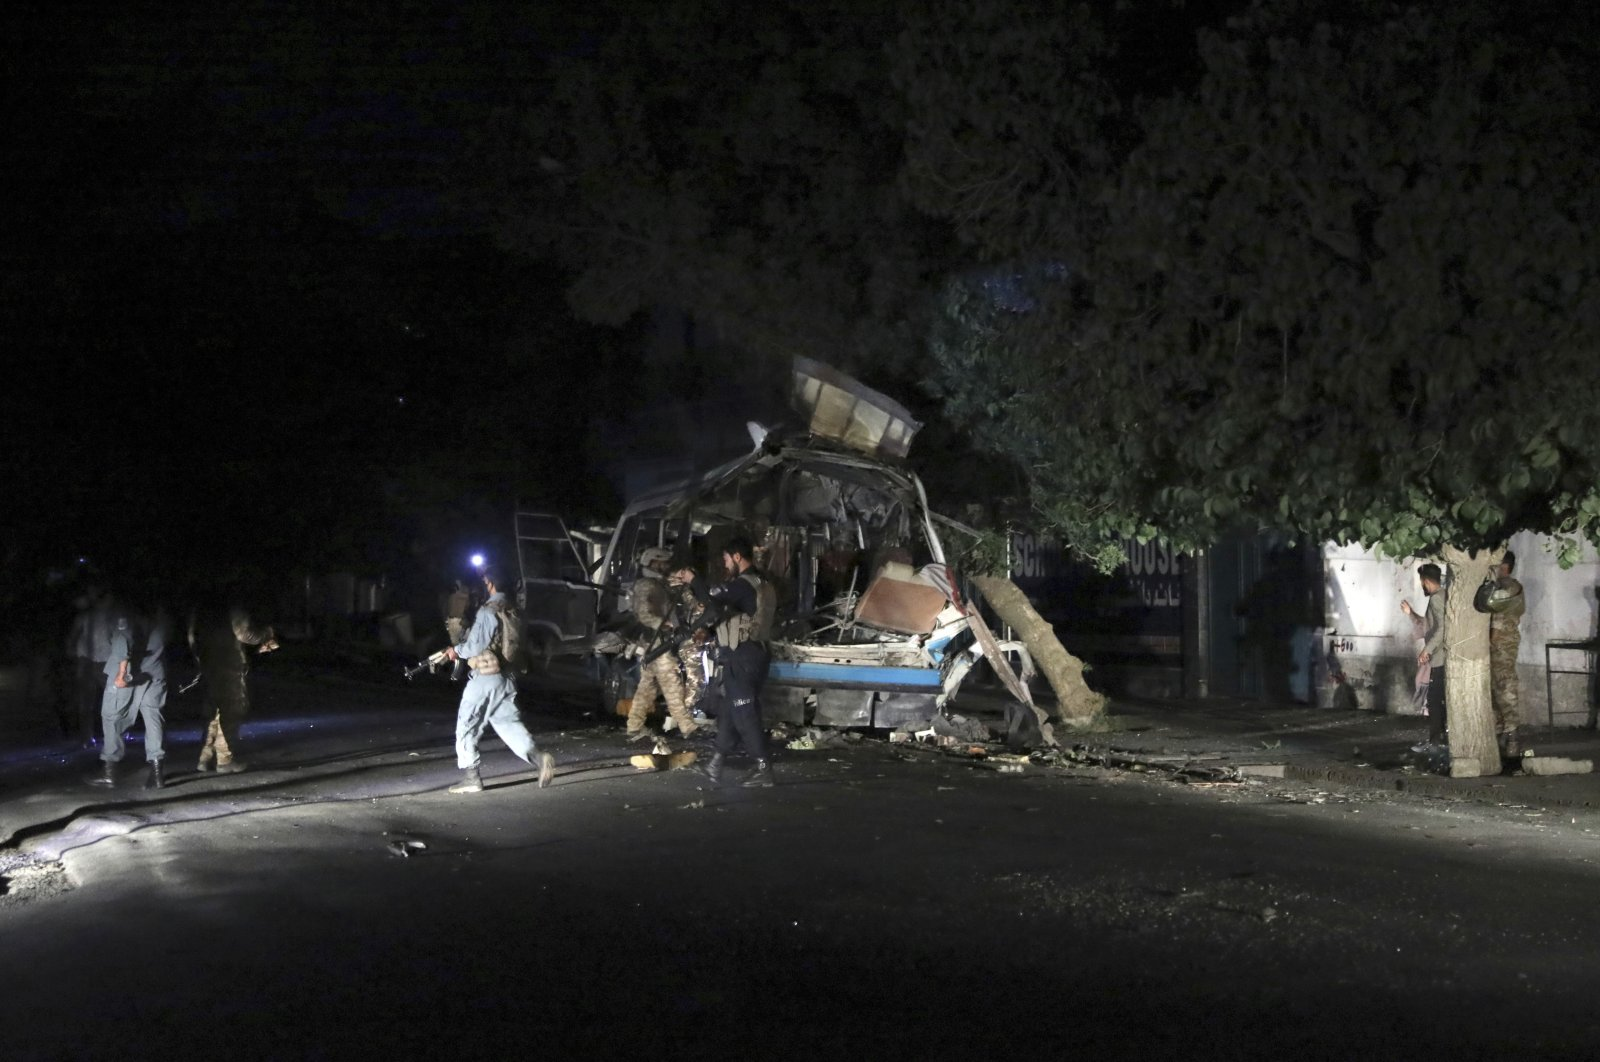 Afghan security personnel inspect the site of a bomb explosion in Kabul, Afghanistan, June 1, 2021. (AP Photo)